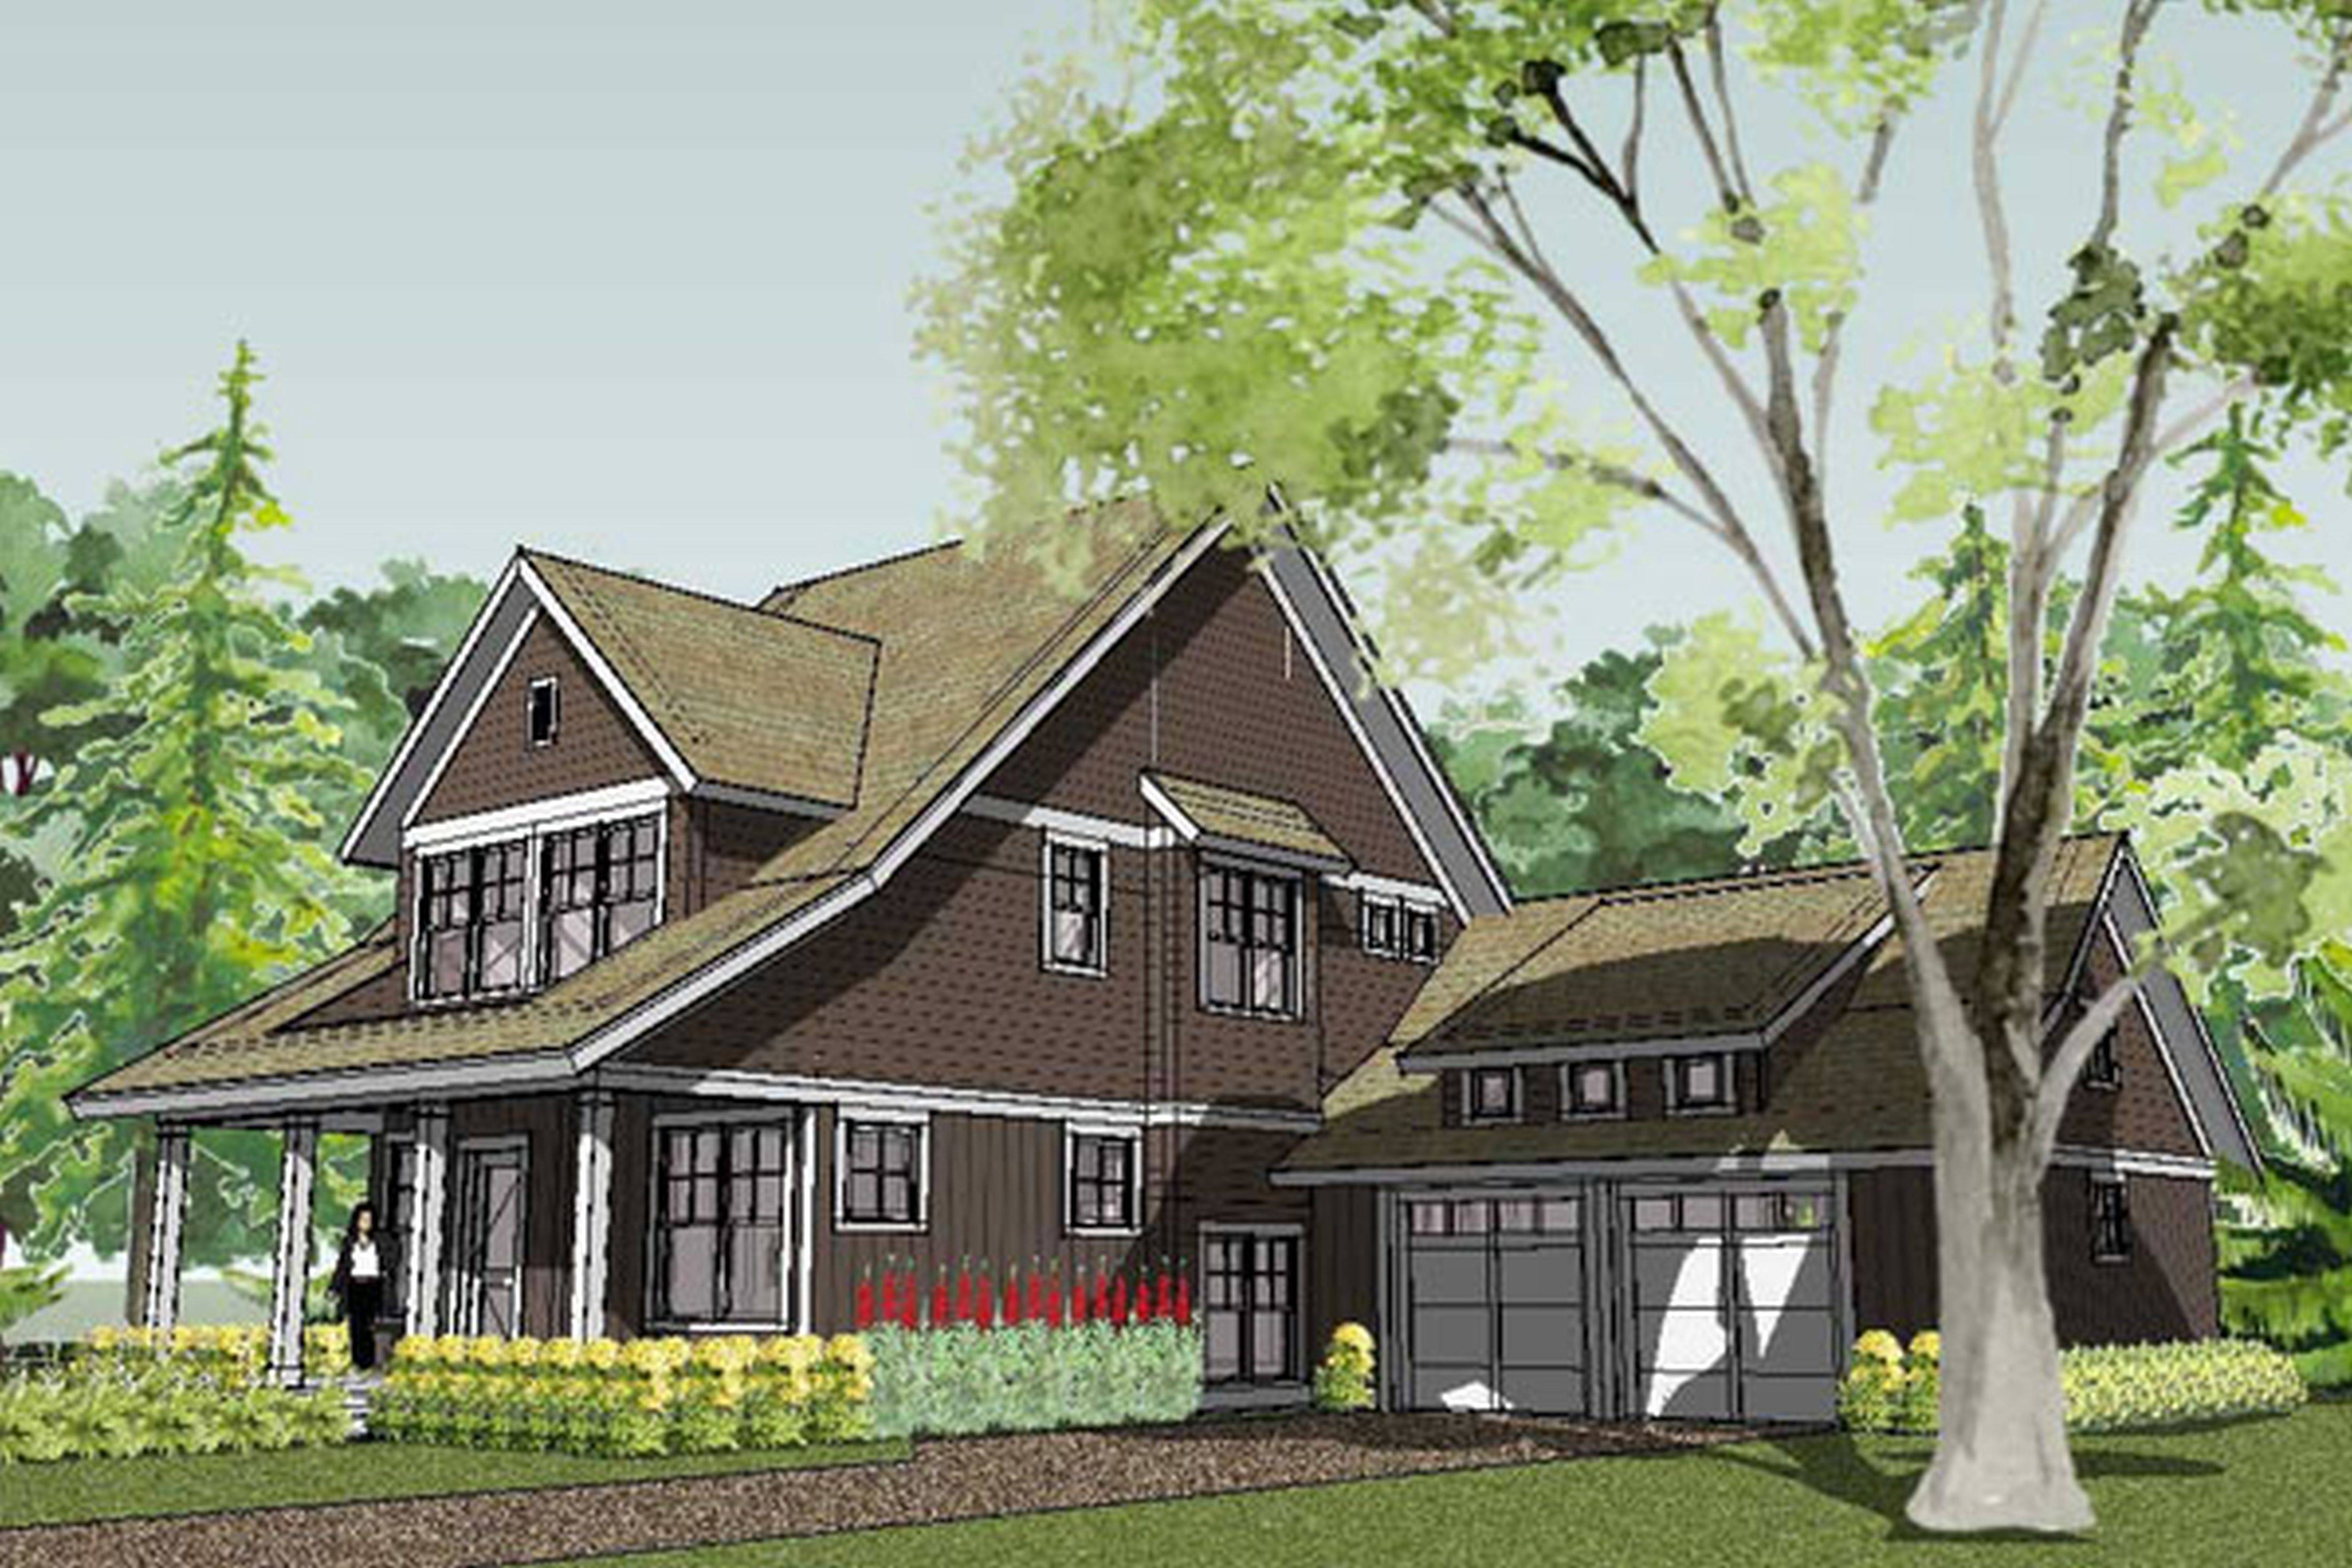 Bungalow house attic plans home design bungalows house plans bungalow house attic plans home design bungalows